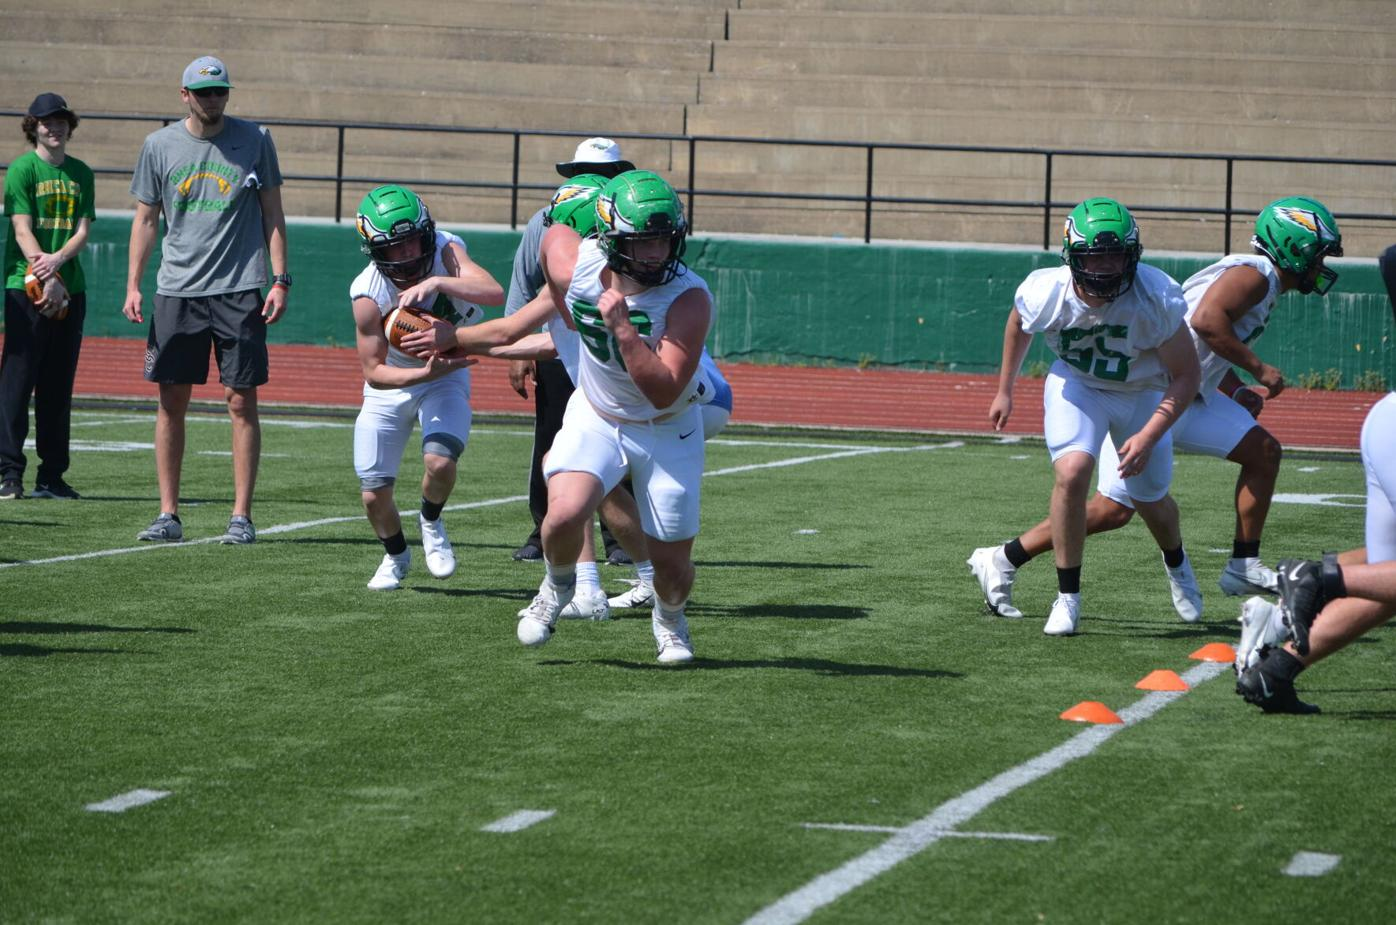 RCHS EAGLE FOOTBALL OPENS SPRING PRACTICE